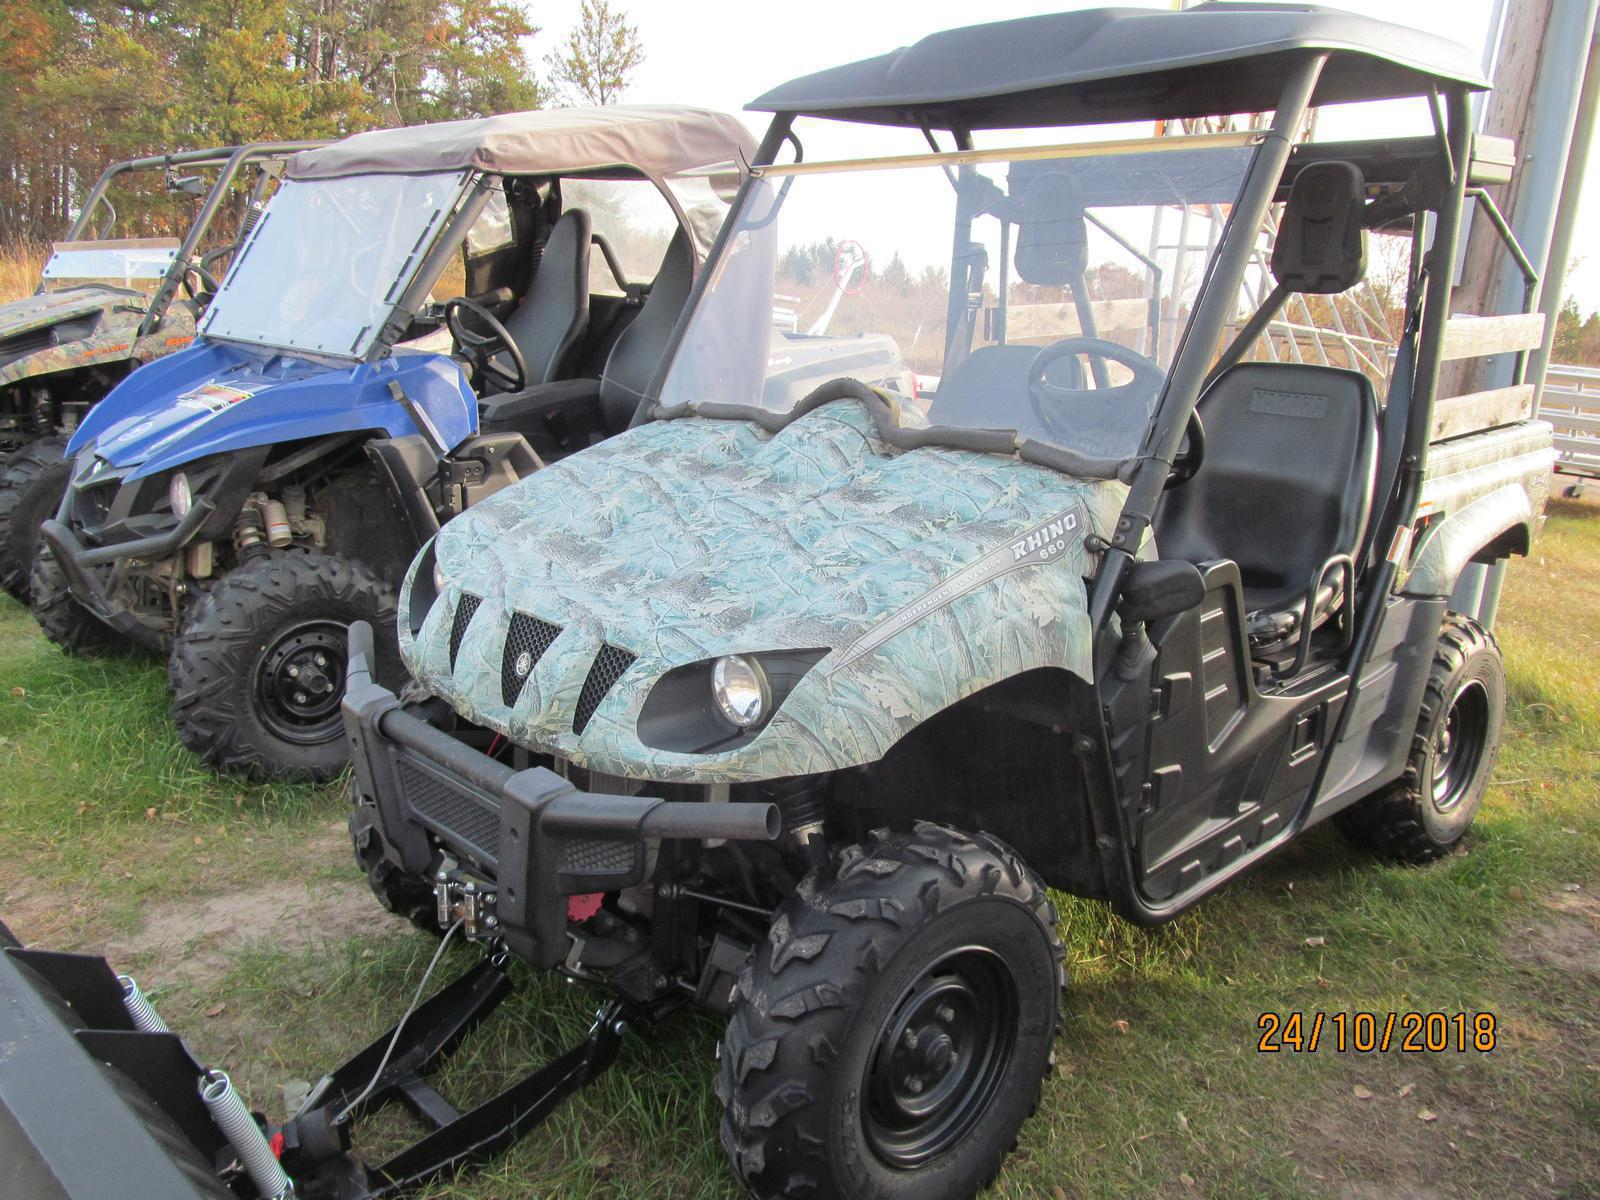 2007 Yamaha Rhino 660 4wd Hunter For Sale In Baxter Mn Brothers Fuel Filter Location Used Sxs 040